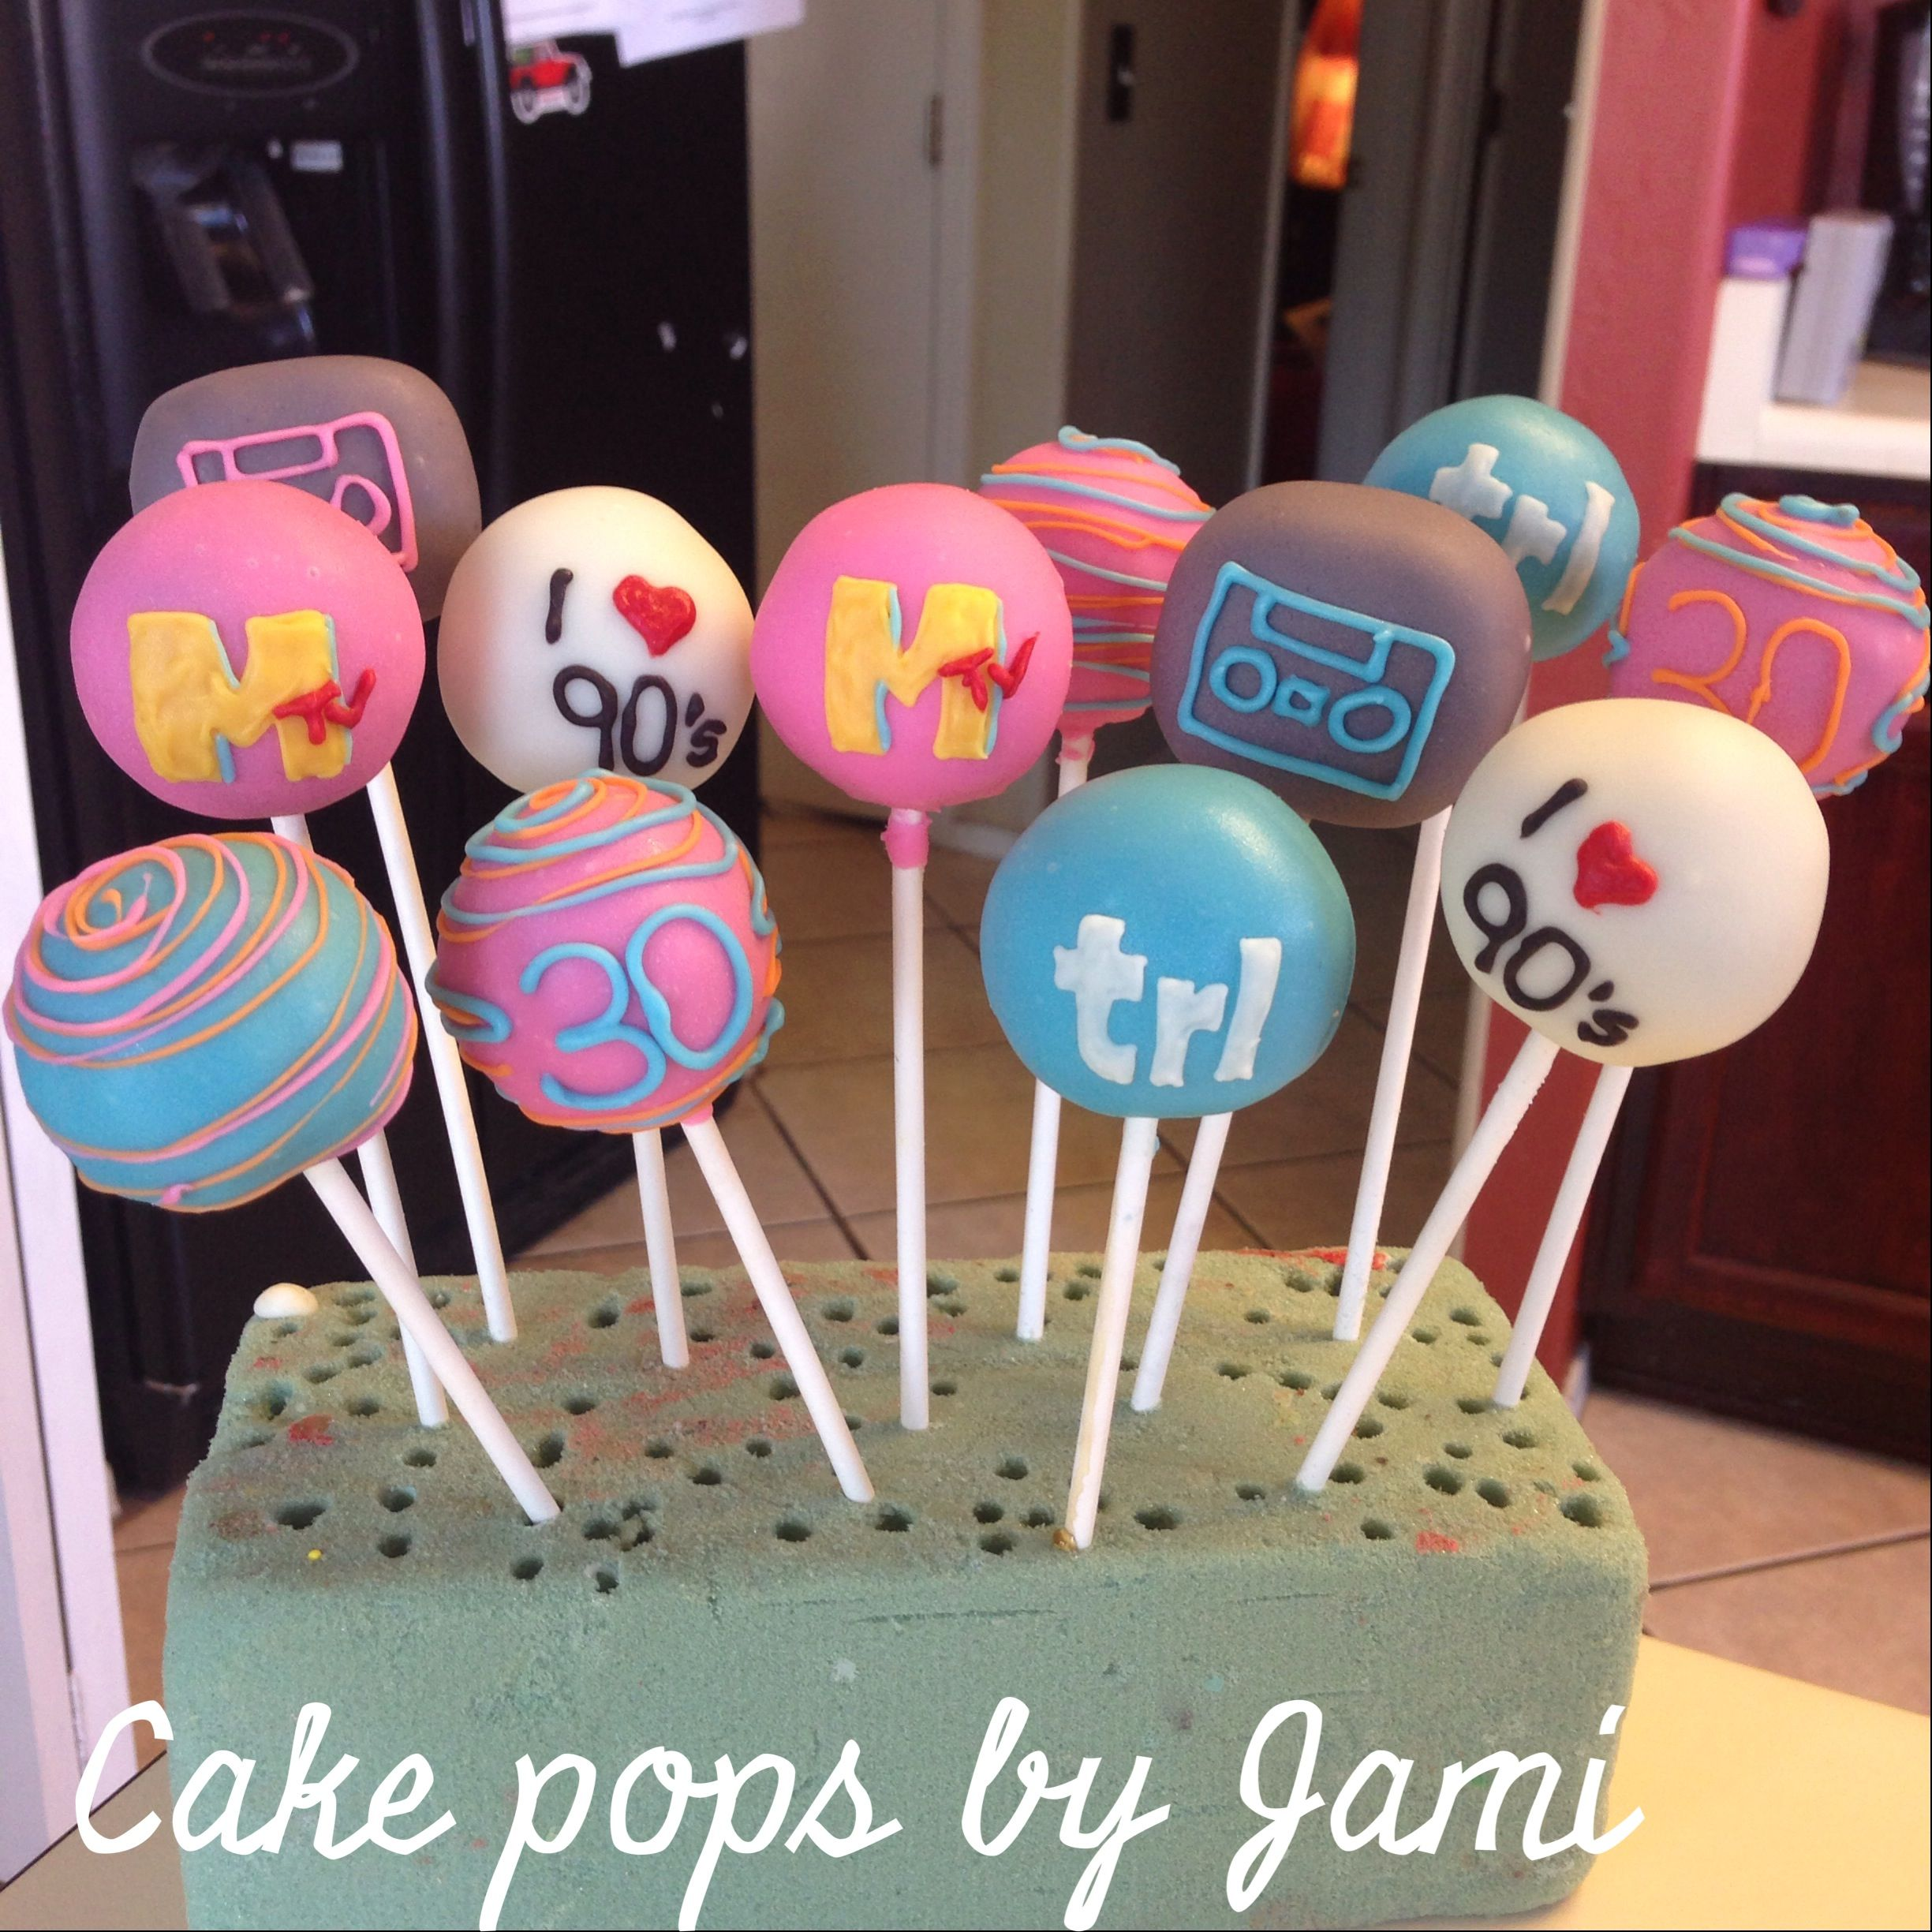 90s Themed Cake Pops For A 30th Birthday You Can Find Me On Facebook At By Jami